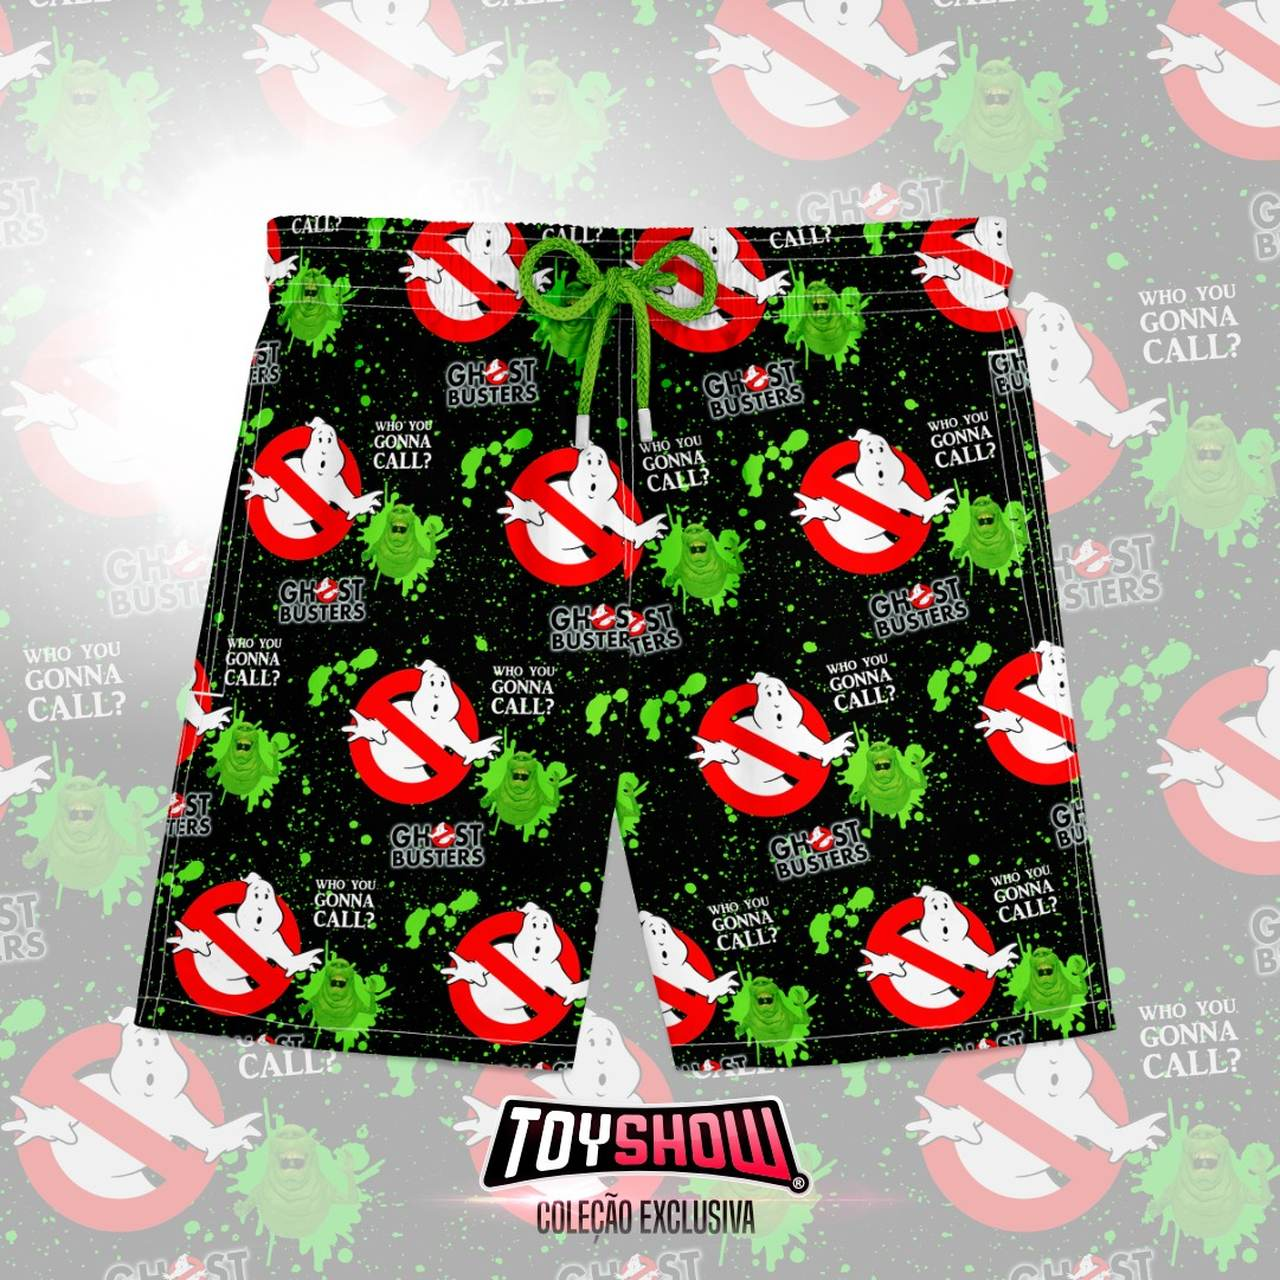 Bermuda (Shorts Praia) Who You Gonna Call?: Os Caça Fantasmas (Ghostbusters)